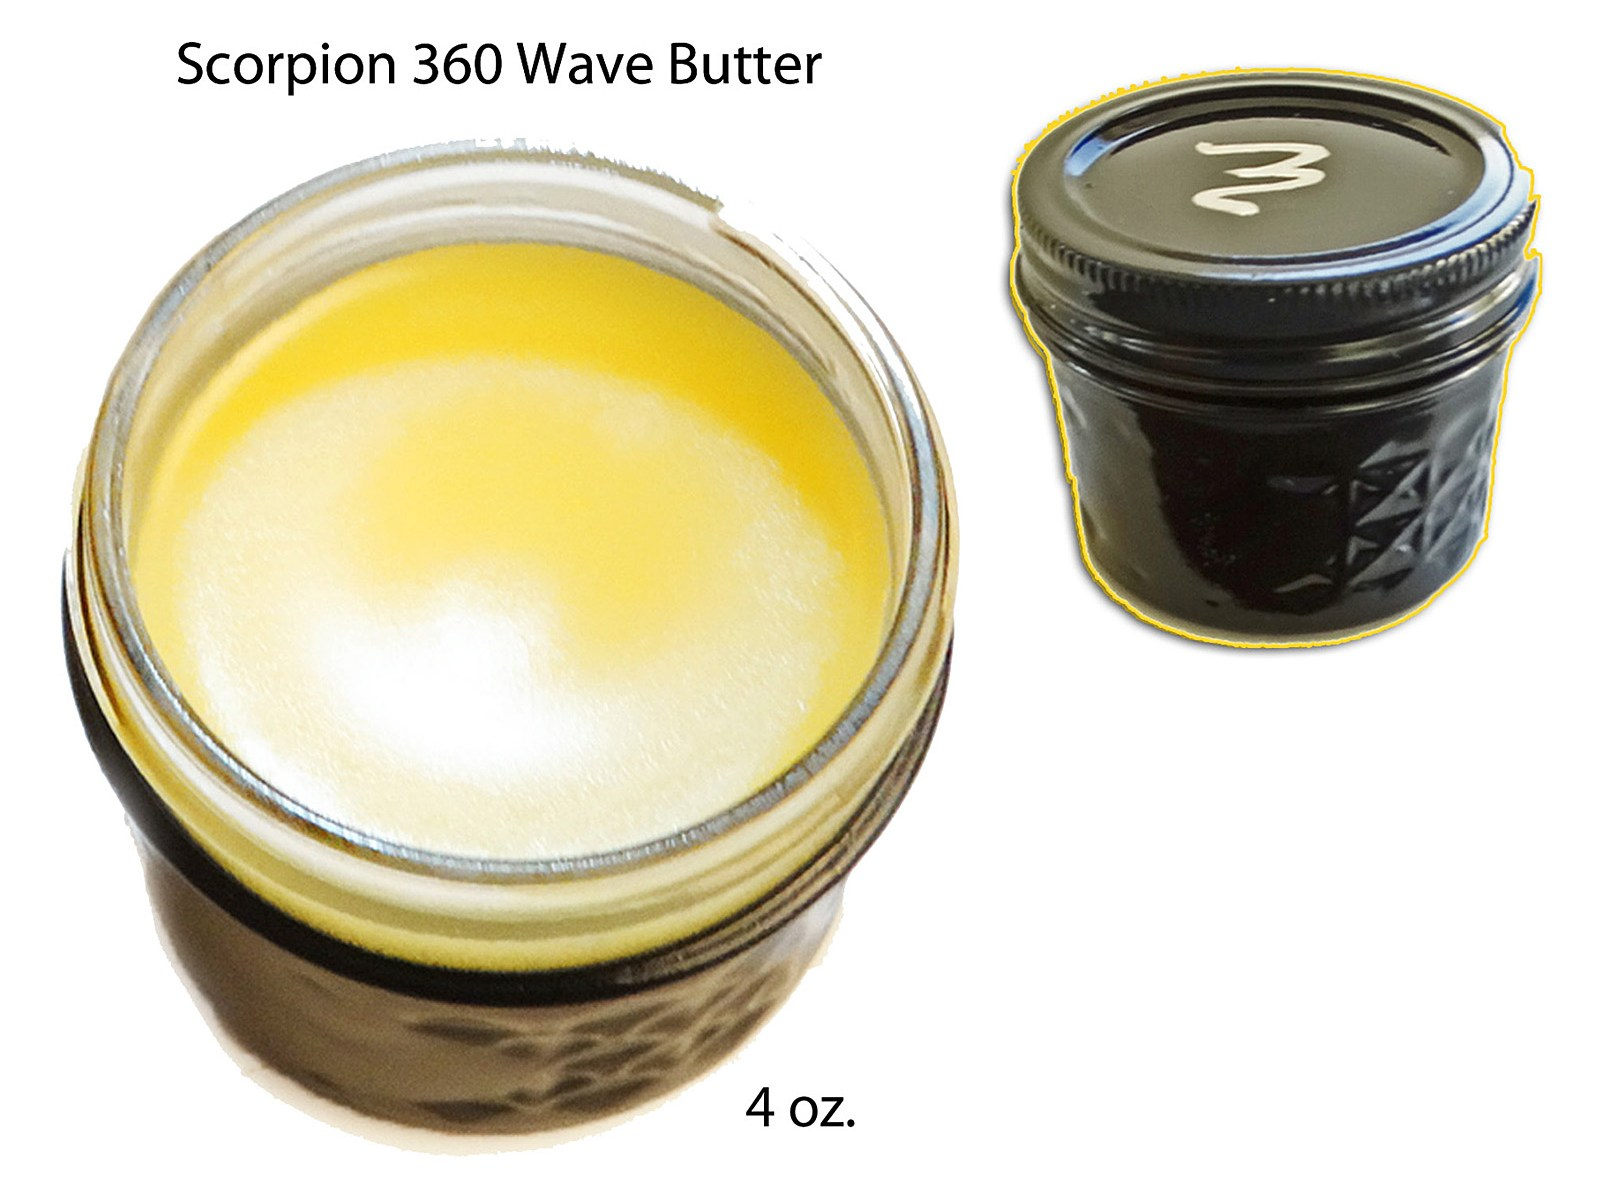 Scorpion 360 Wave Butter 4 once